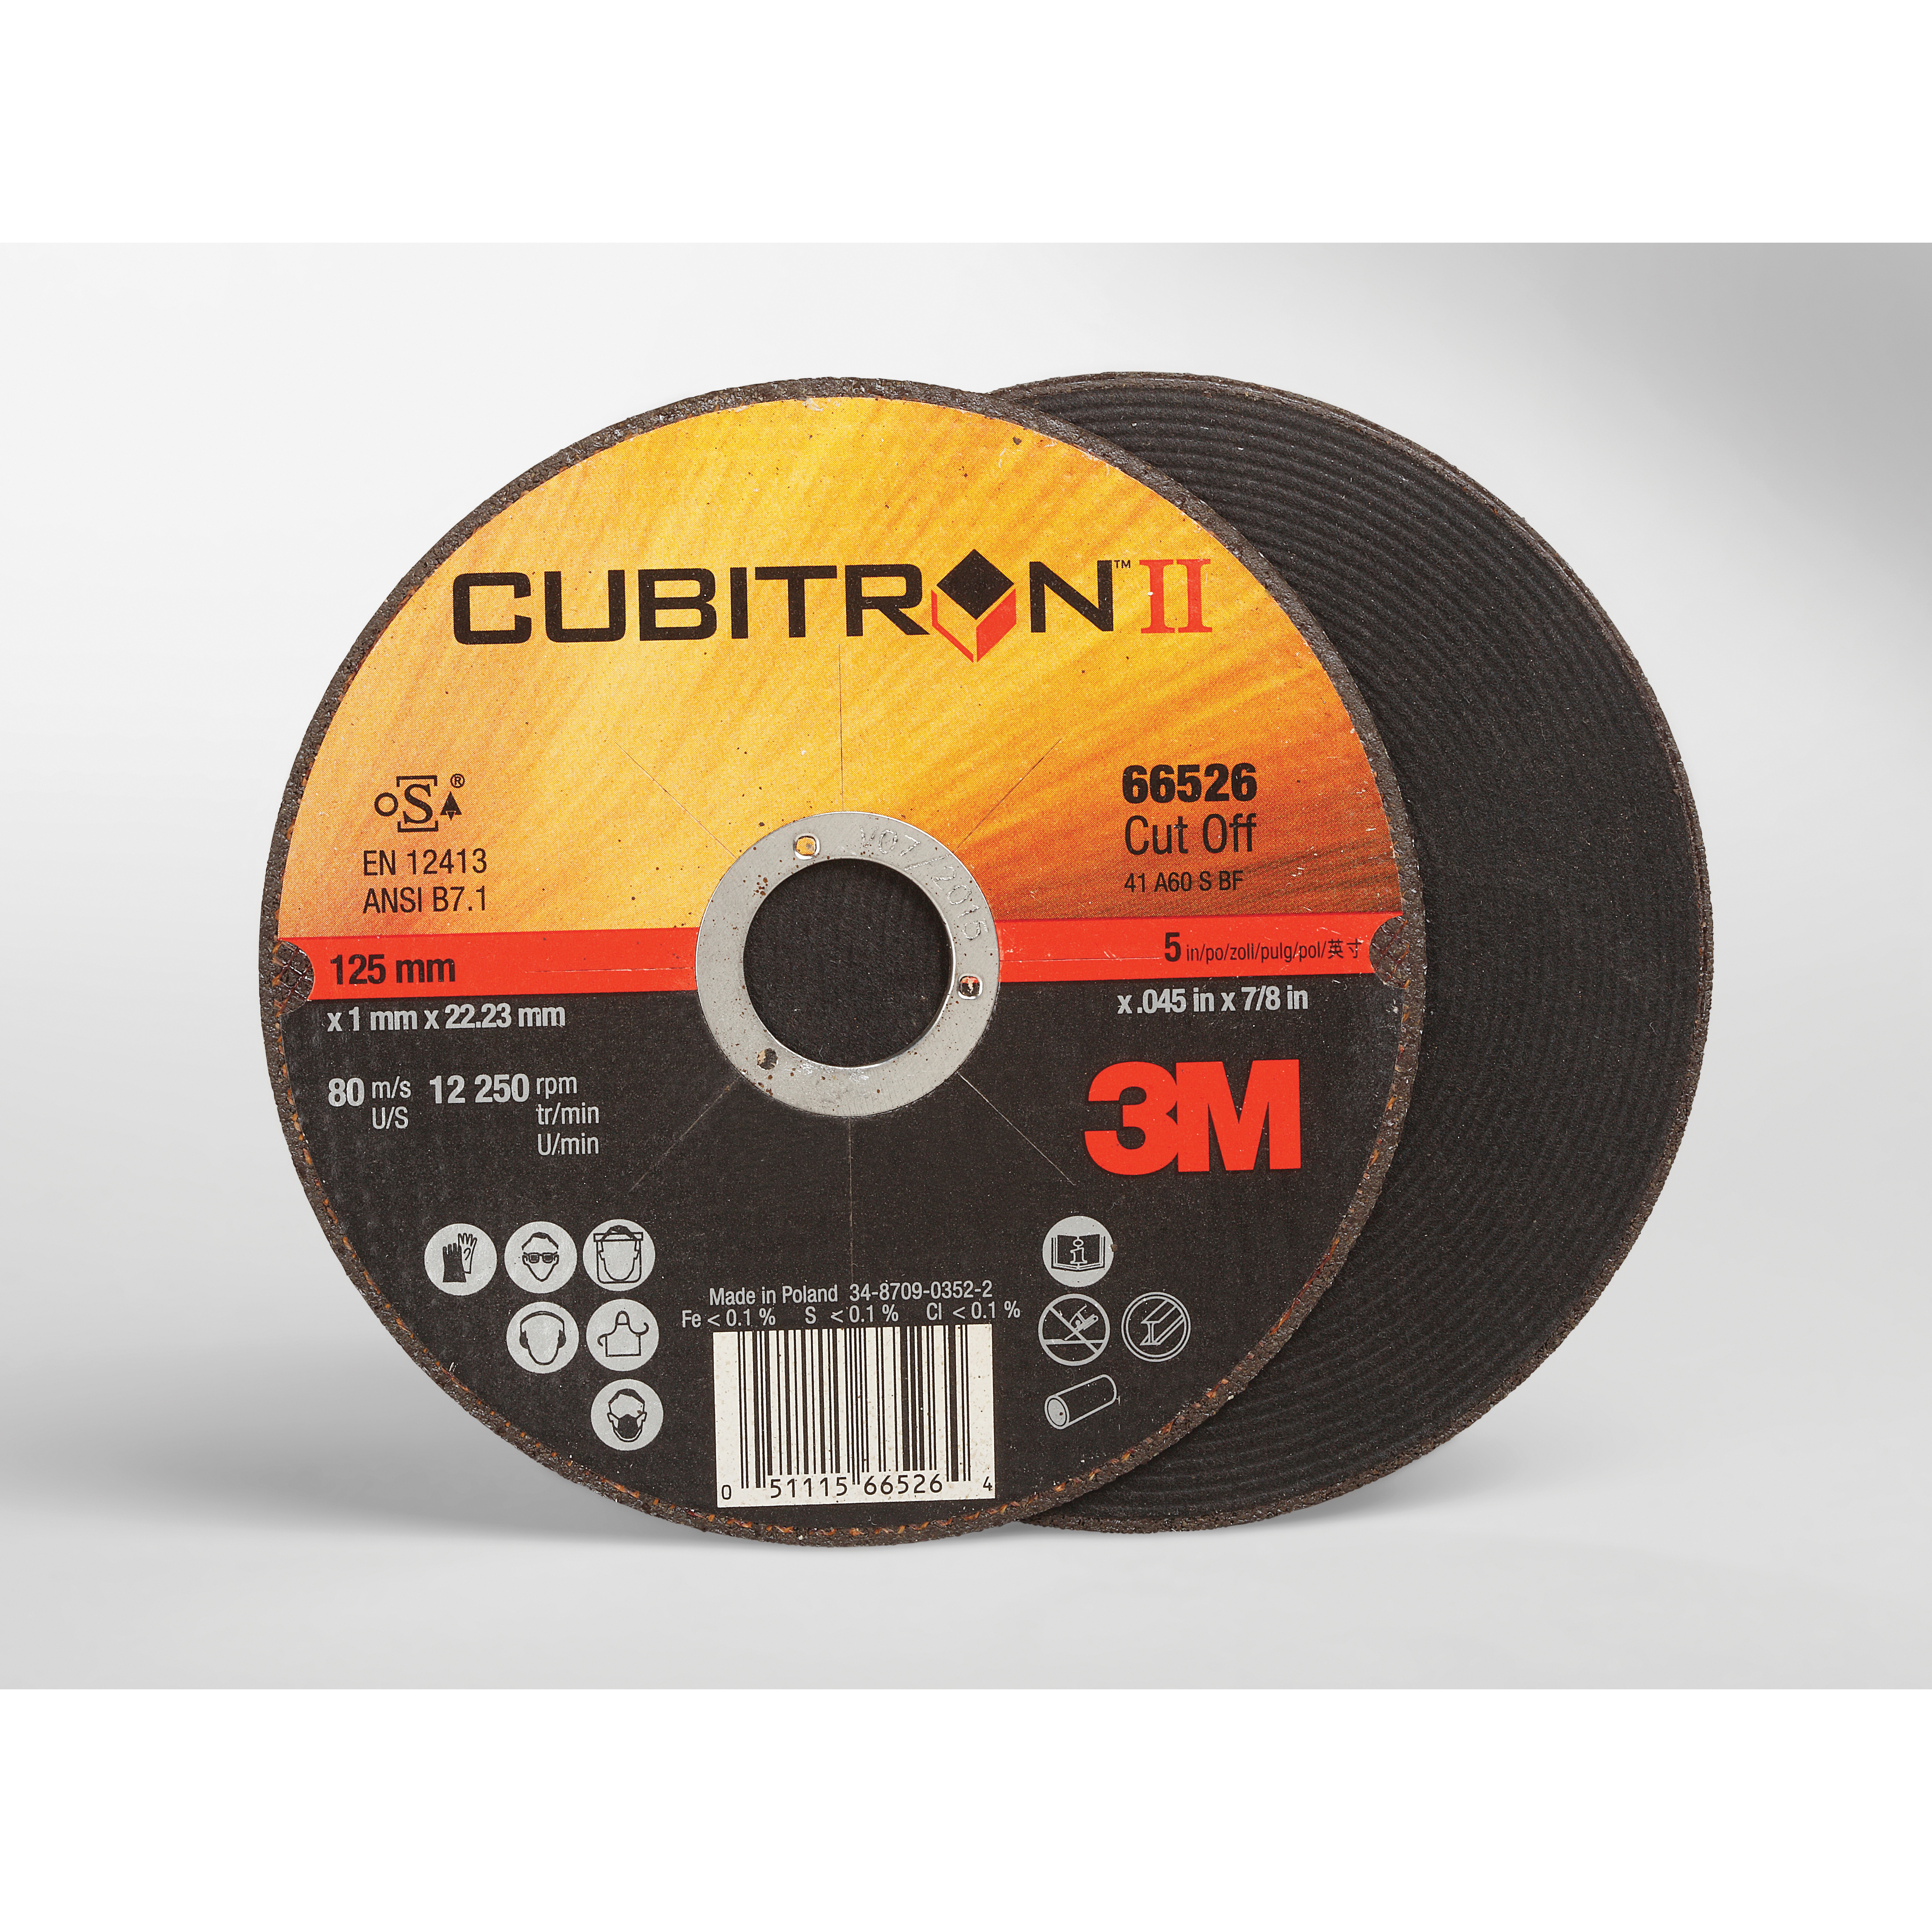 Cubitron™ II 051115-66525 COW Straight Wheel Brush With (2) 1/2 x 1/4 in Keyways, 4-1/2 in Dia x 0.045 in THK, 7/8 in Center Hole, 60 Grit, Ceramic Abrasive